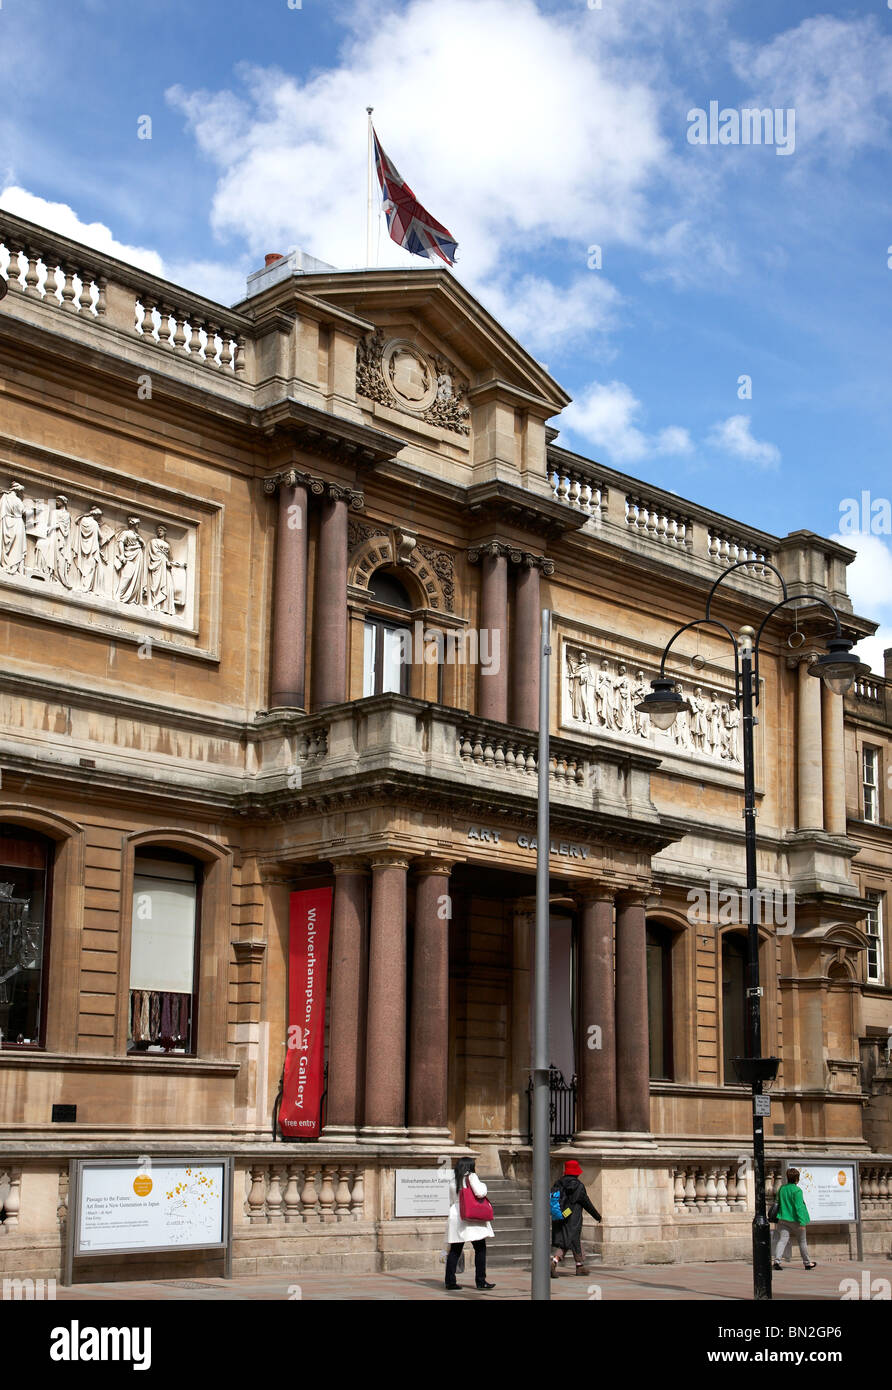 Exterior of Wolverhampton art gallery and museum in Lichfield Street, Wolverhampton UK. - Stock Image